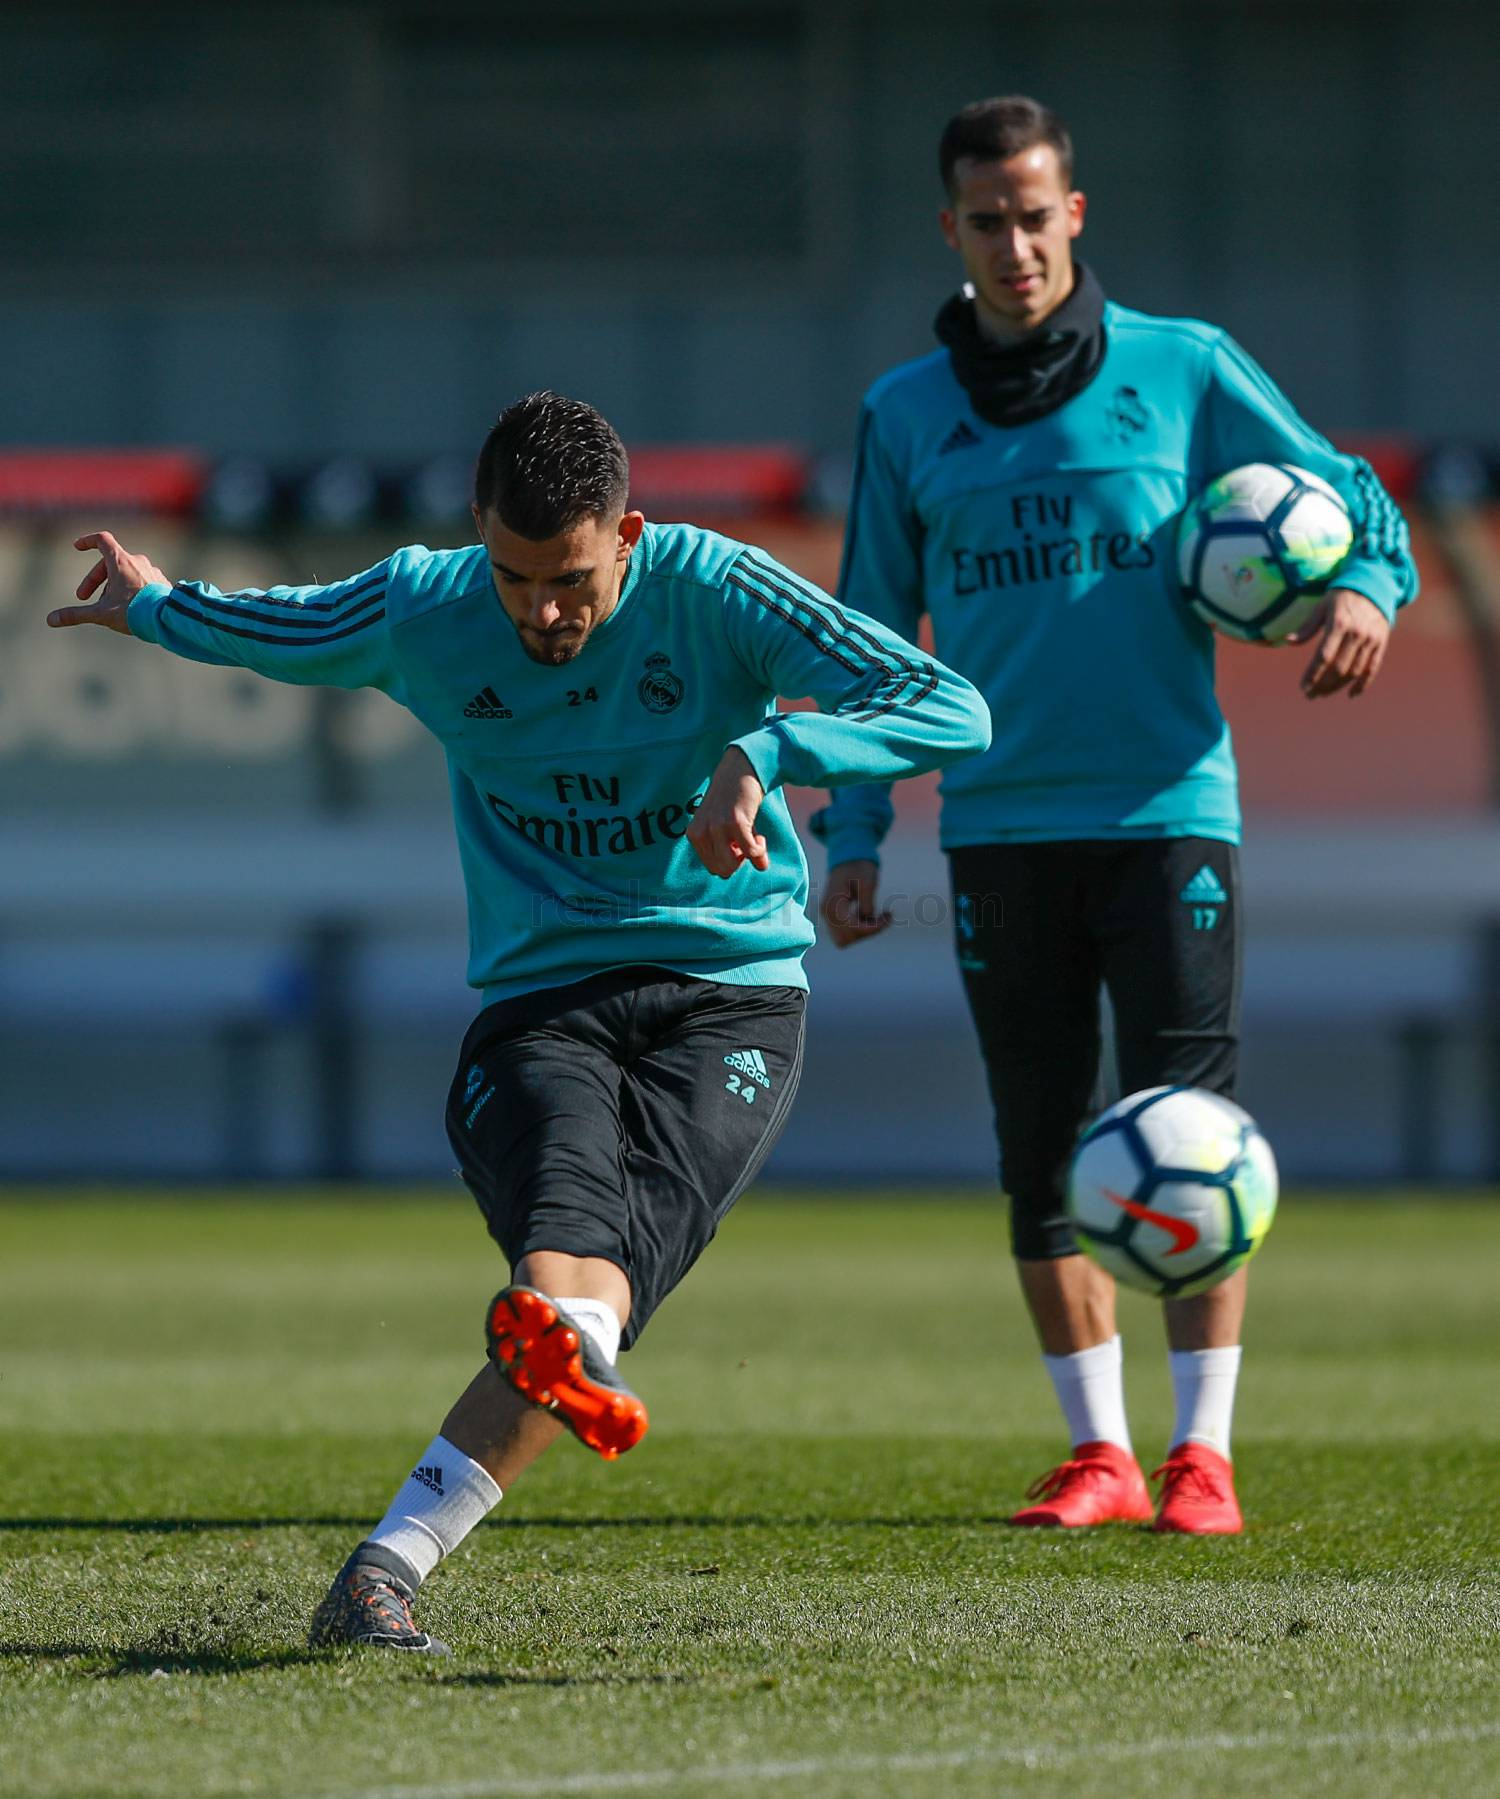 Real Madrid - Entrenamiento del Real Madrid - 26-02-2018